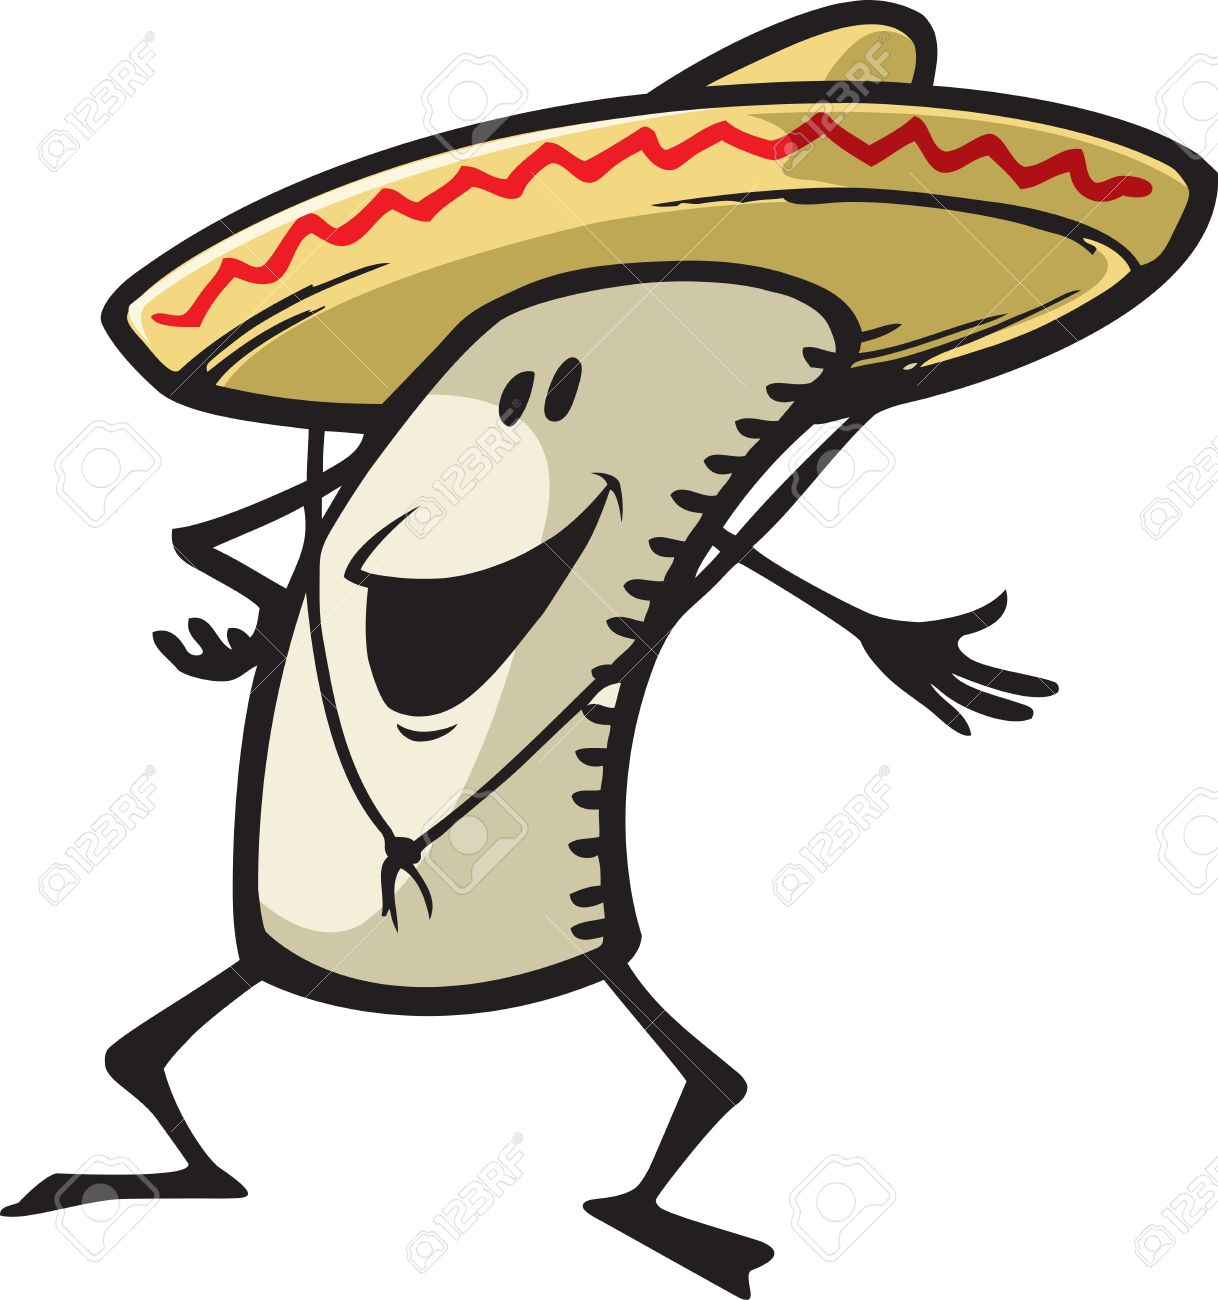 Free download best on. Burrito clipart animated